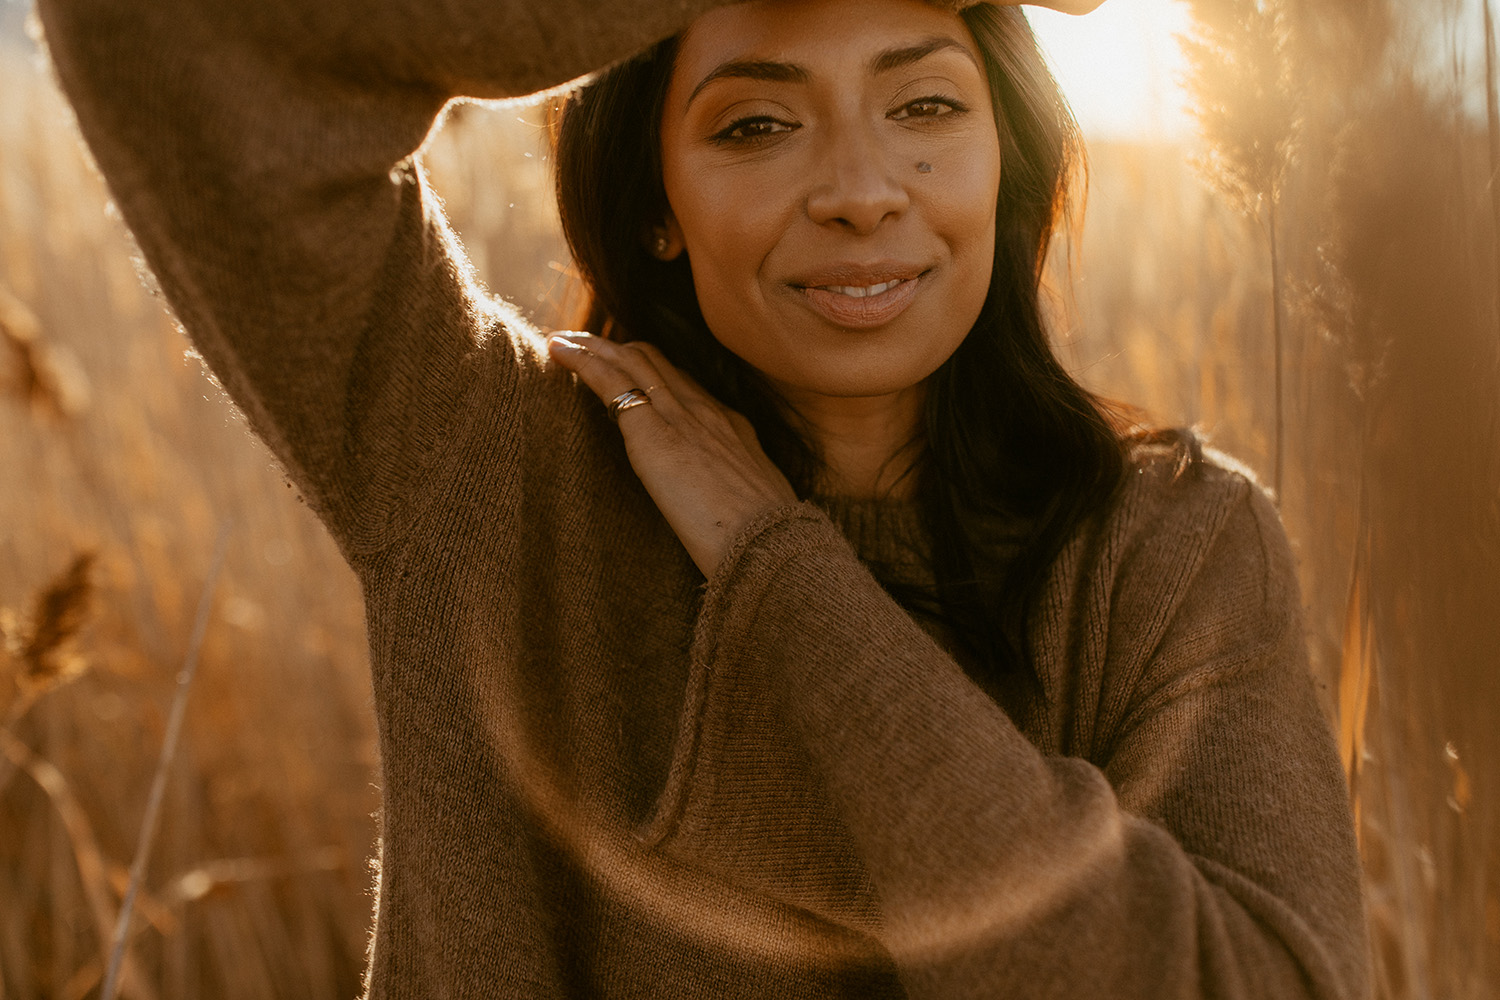 A portrait photo of a woman who stands in a cornfield while the sun shines.